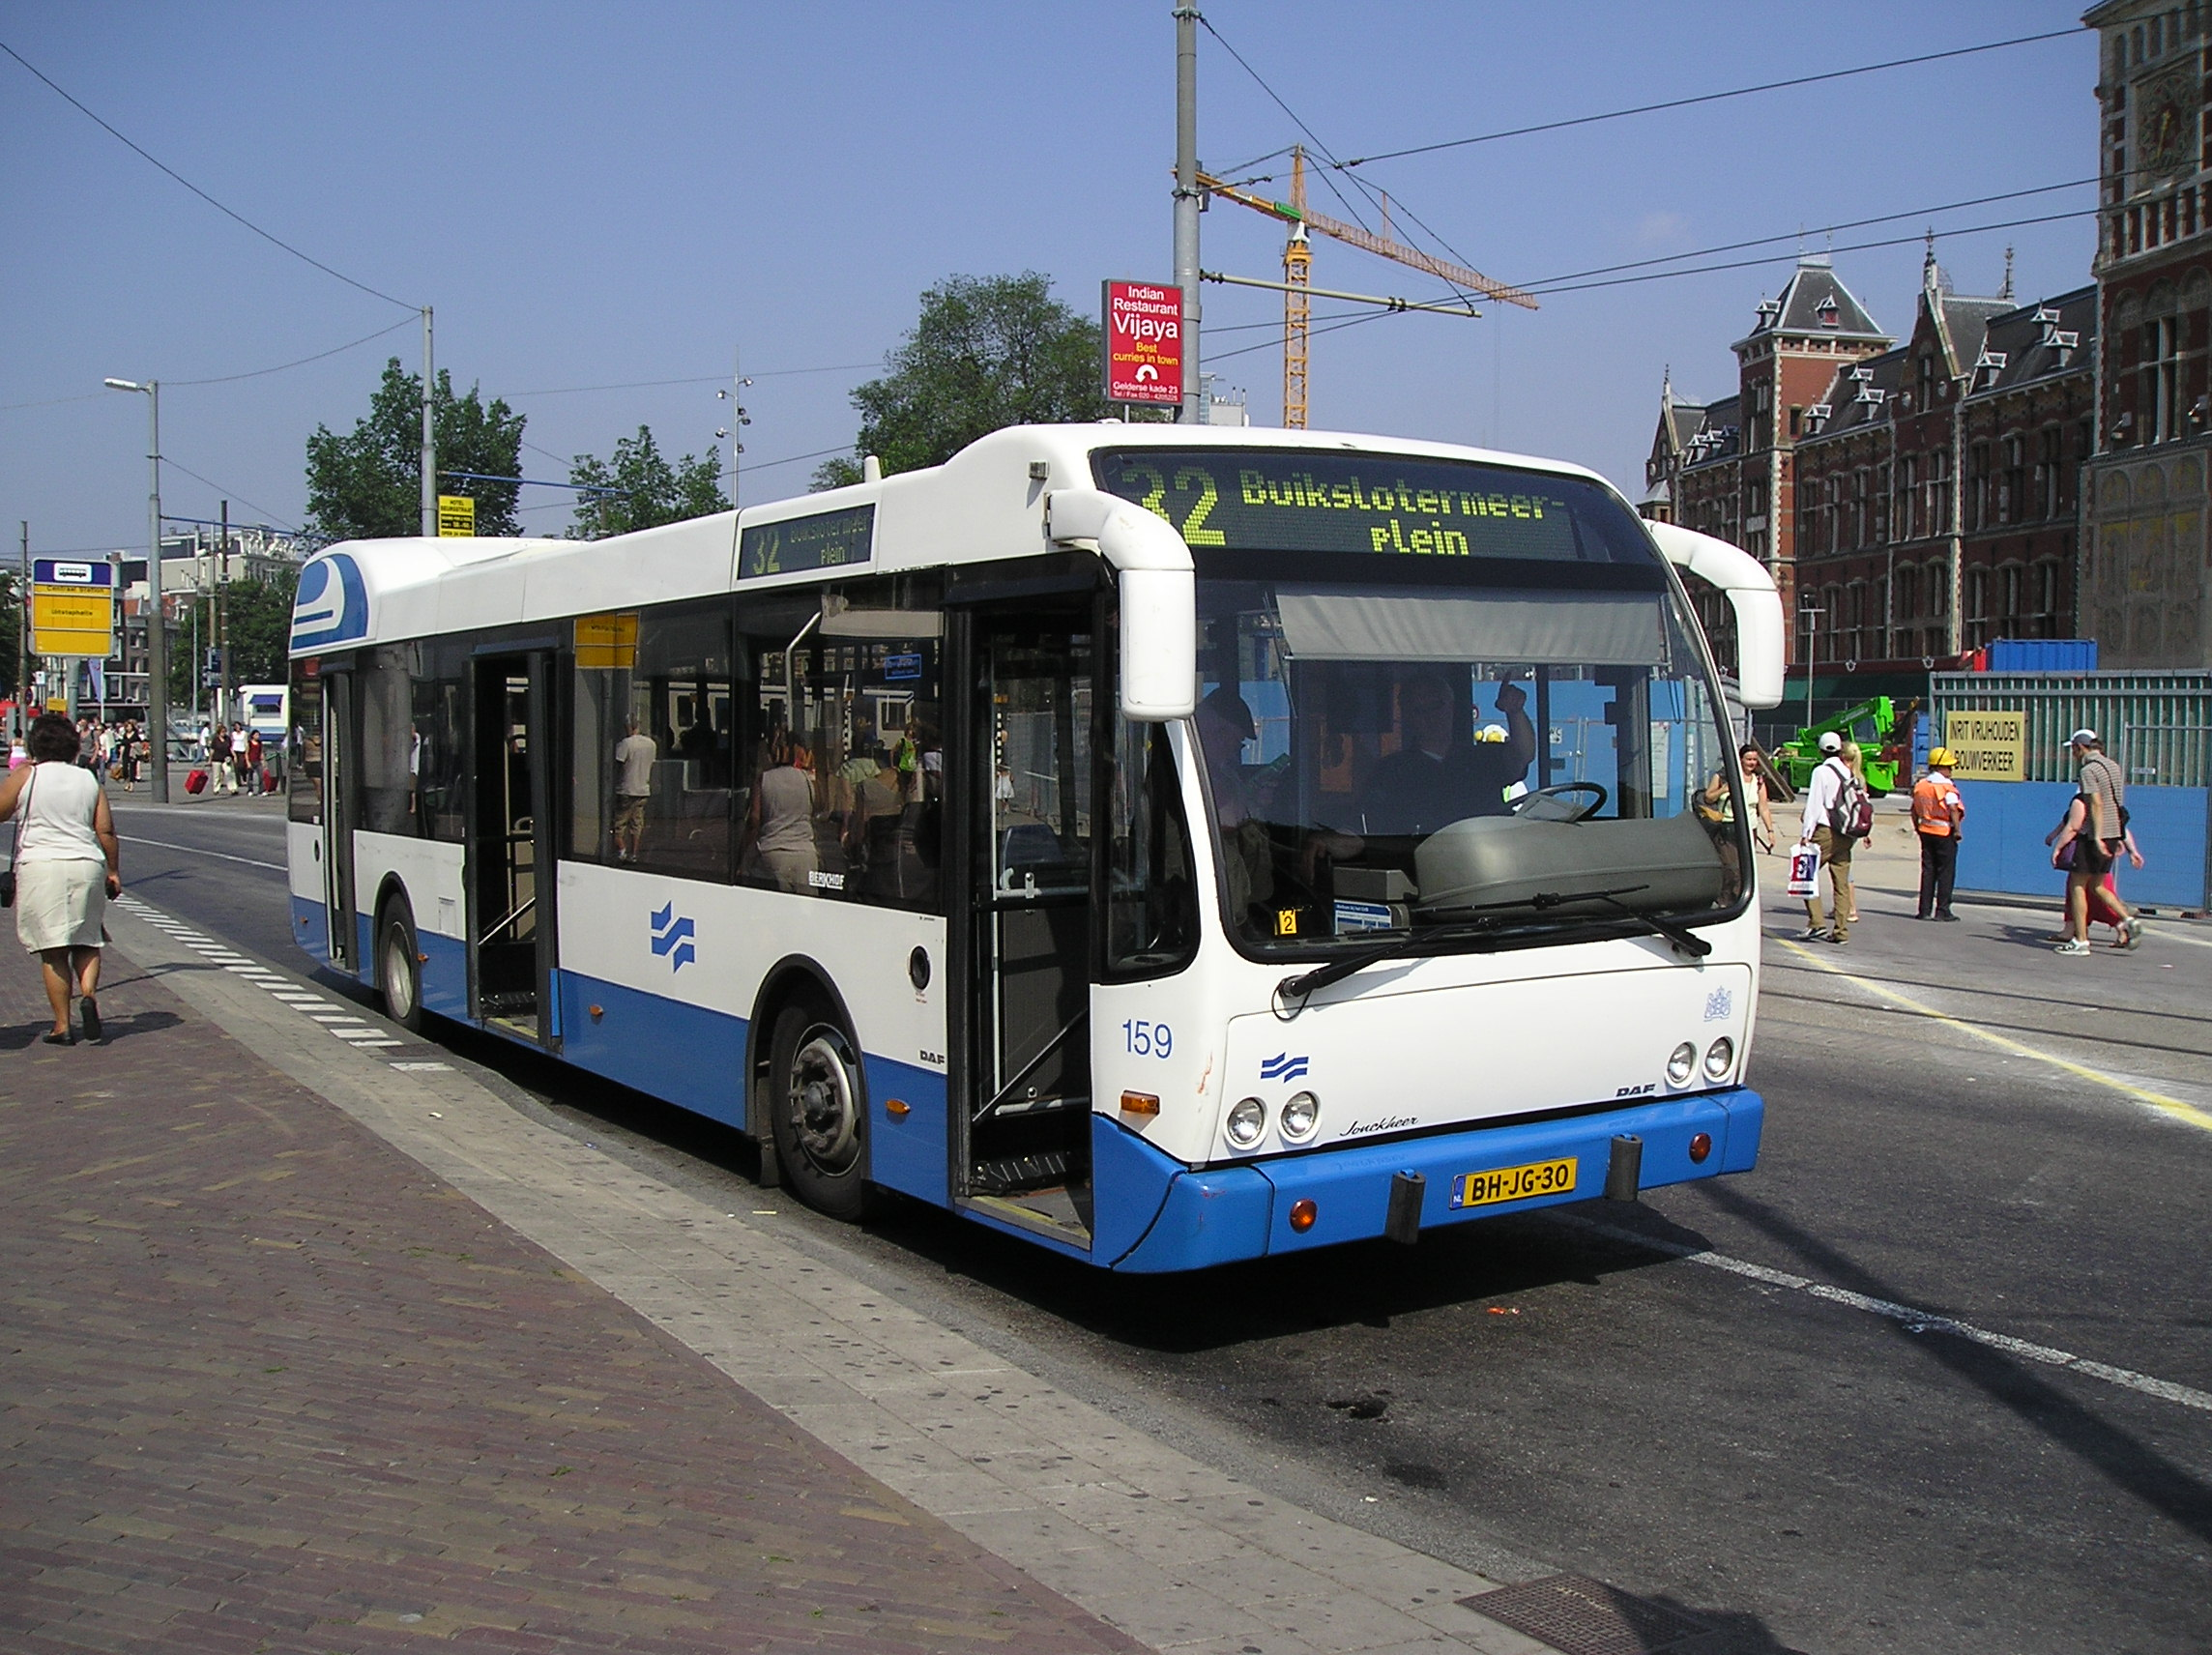 bestand amsterdam bus jpg wikipedia. Black Bedroom Furniture Sets. Home Design Ideas